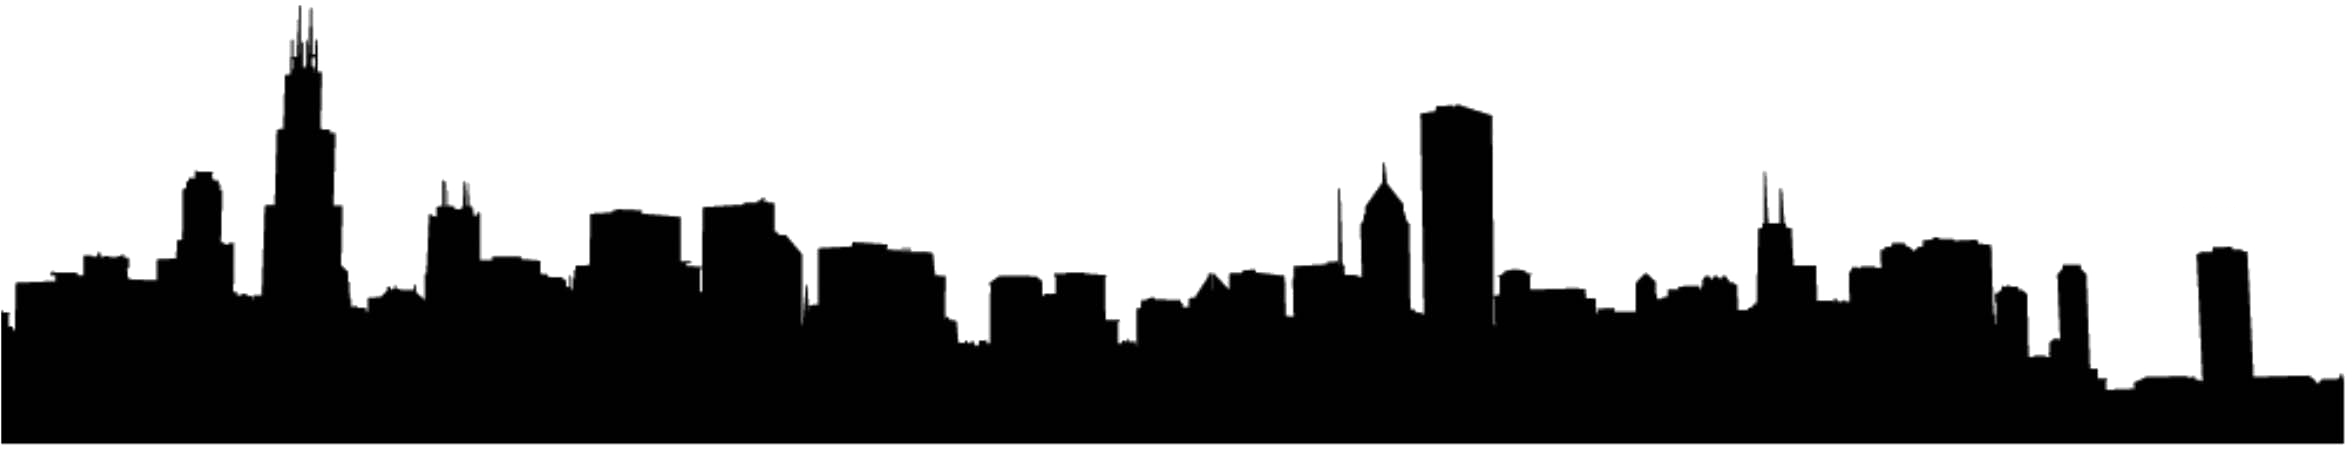 2352x457 Atlanta Drawing Skyline Boston Outline Transparent Png Clipart